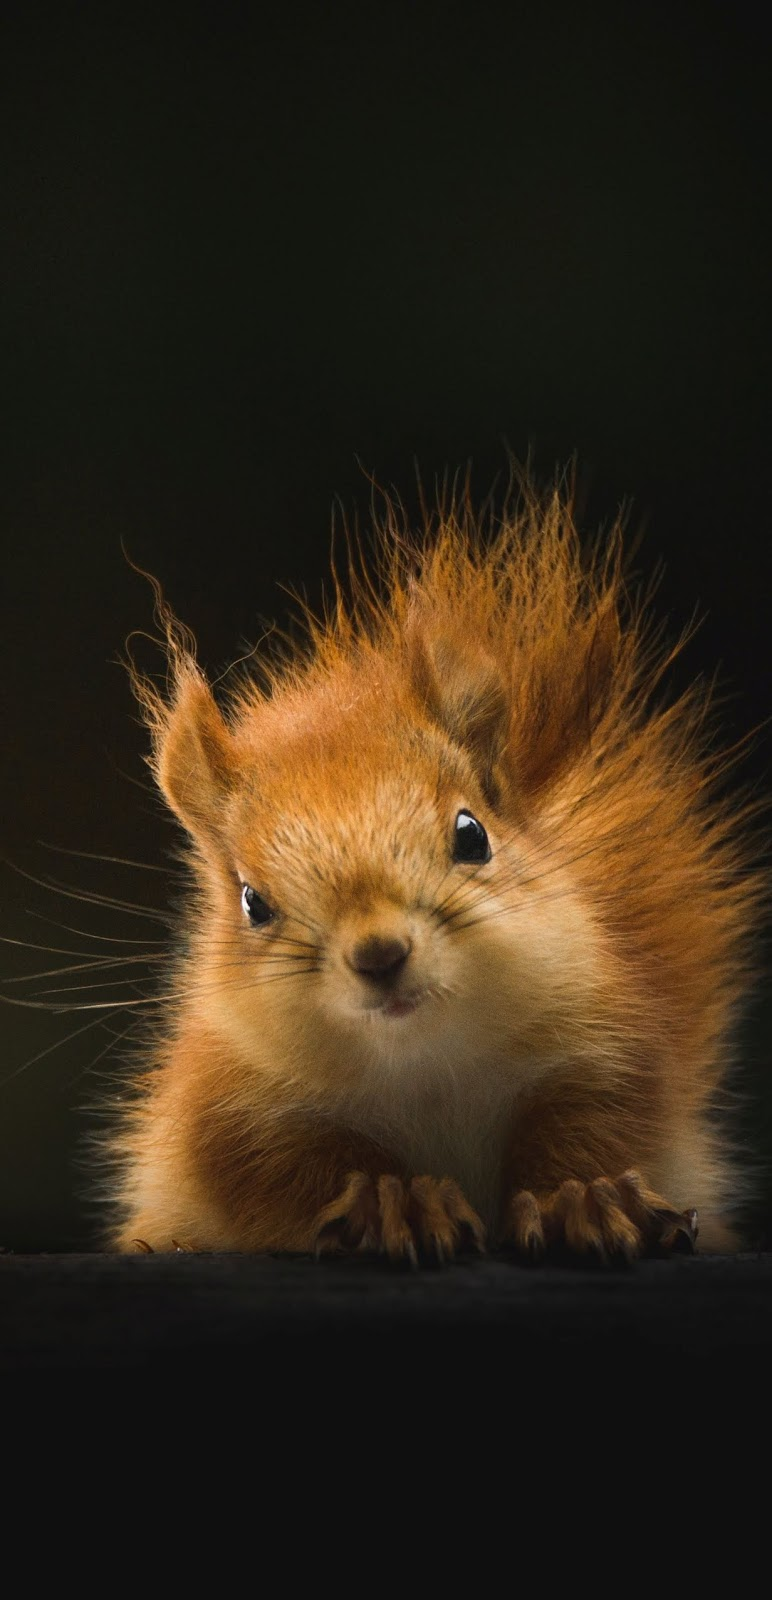 A cute squirrel.